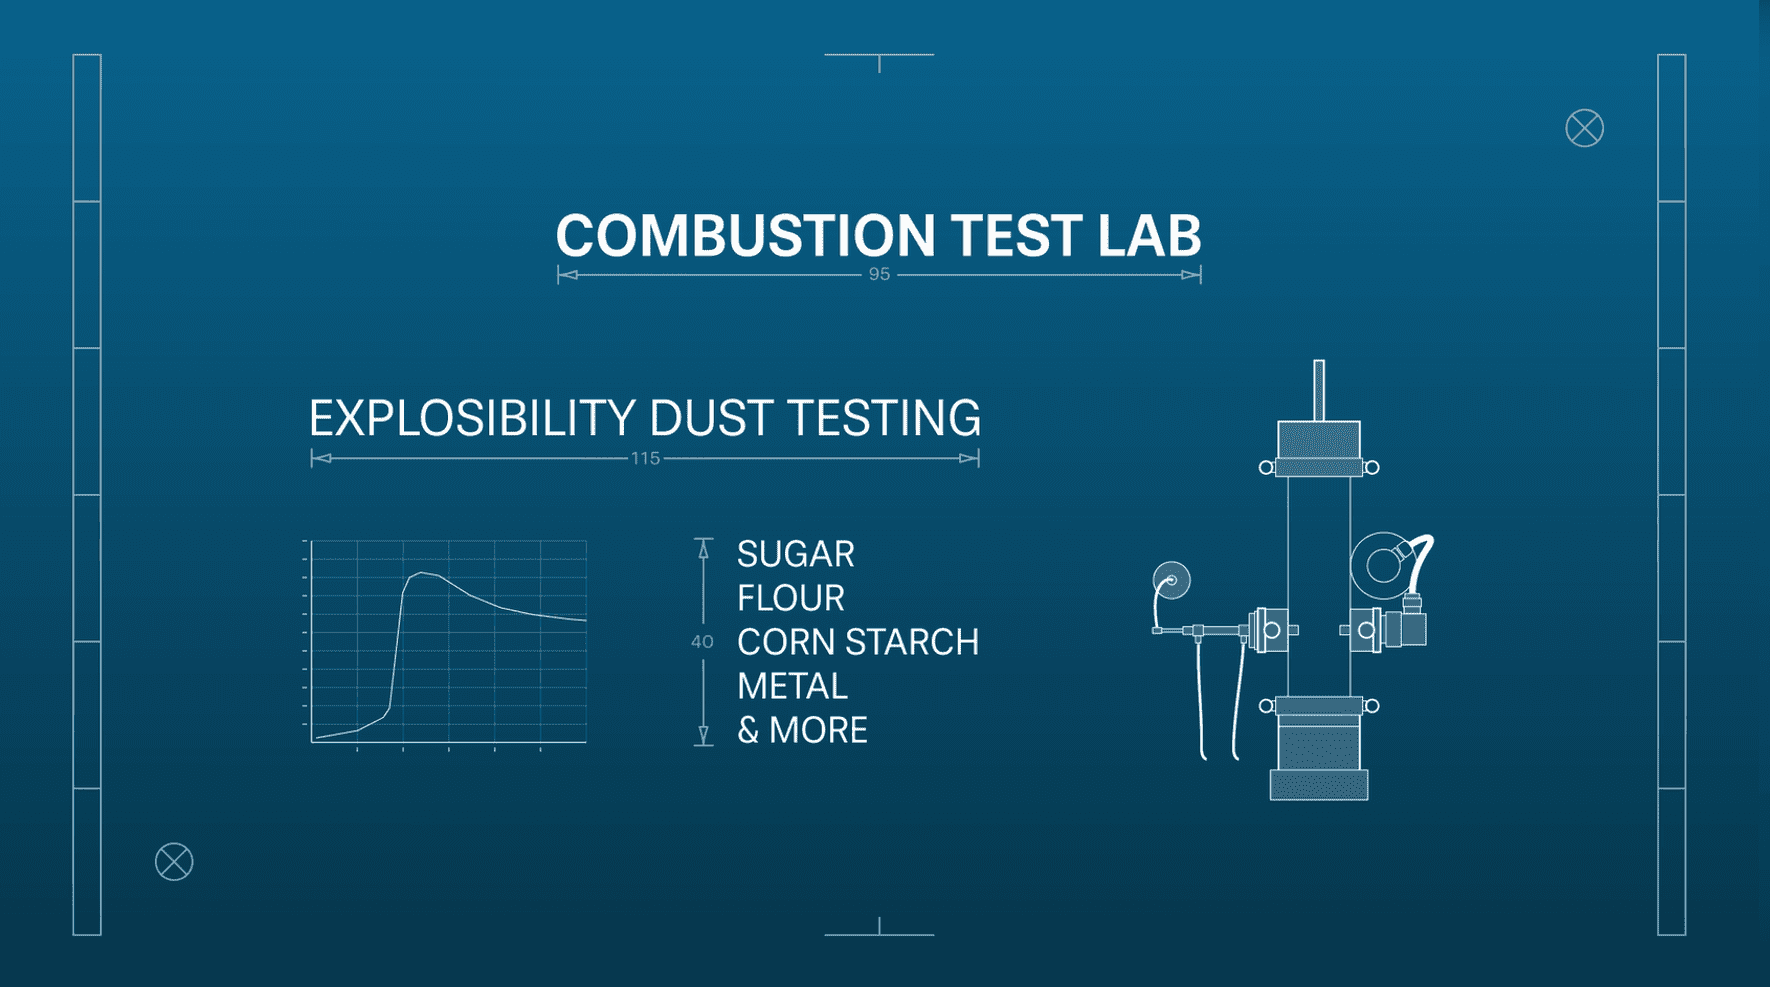 combustion dust test lab